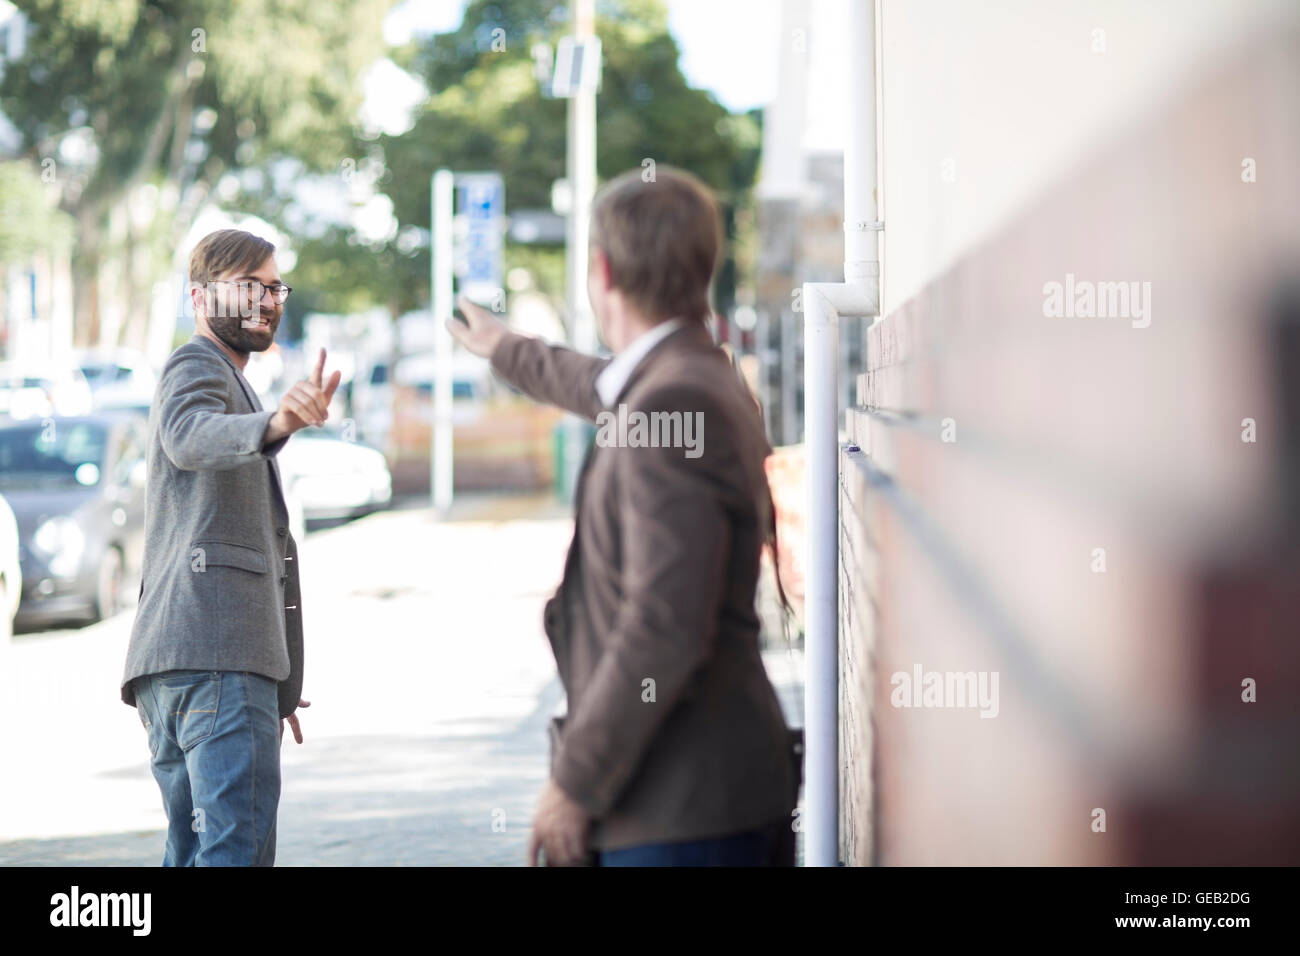 Two men saying goodbye in city - Stock Image